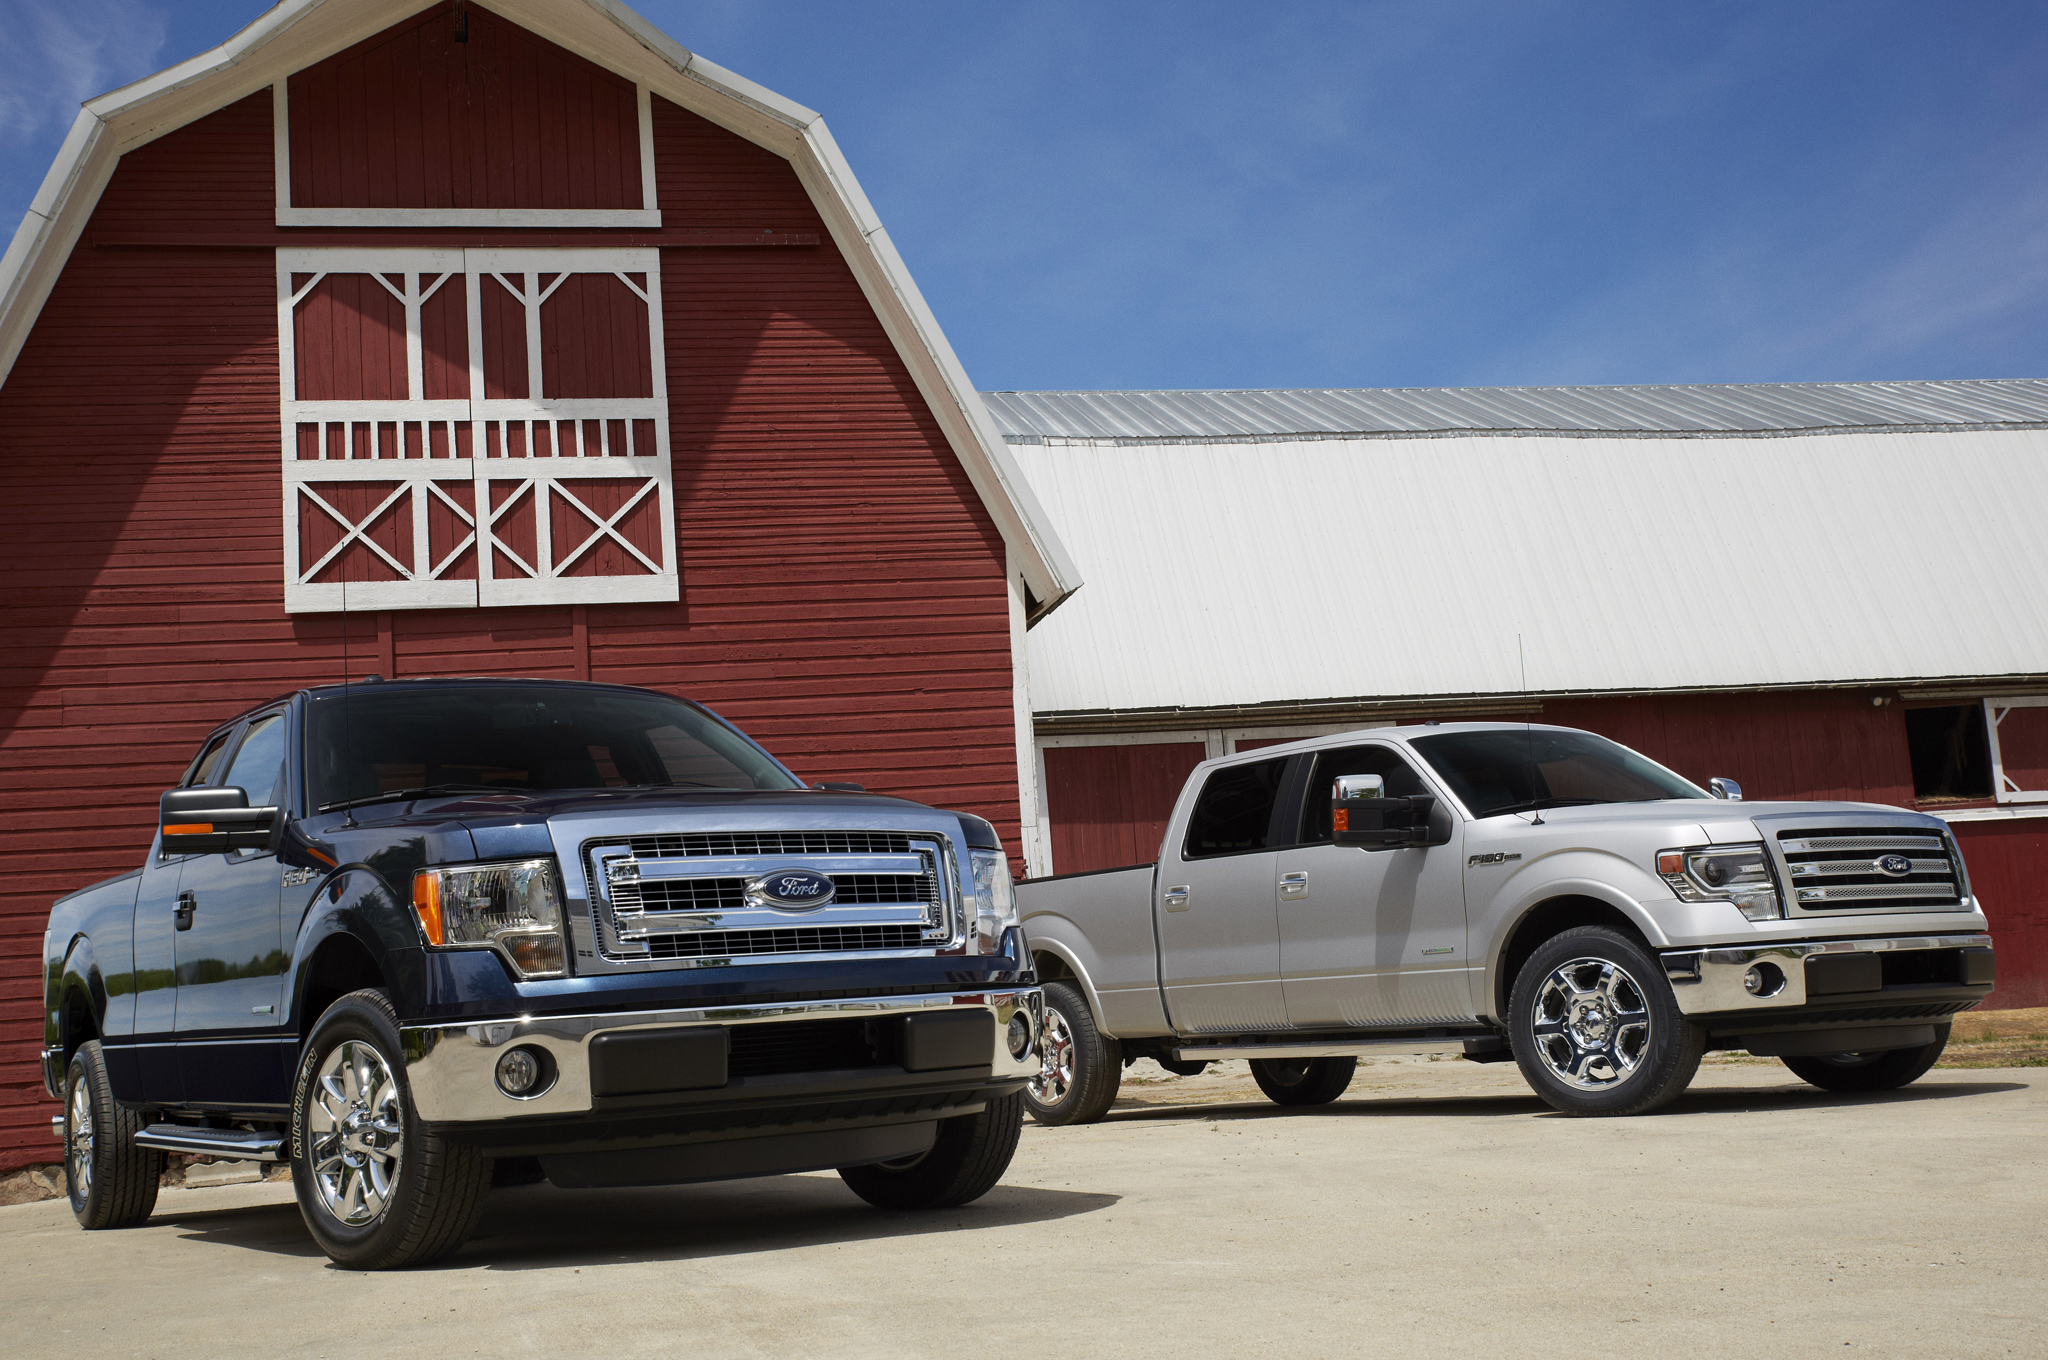 Ford Income Increases to $1.2 Billion for Q2 2013